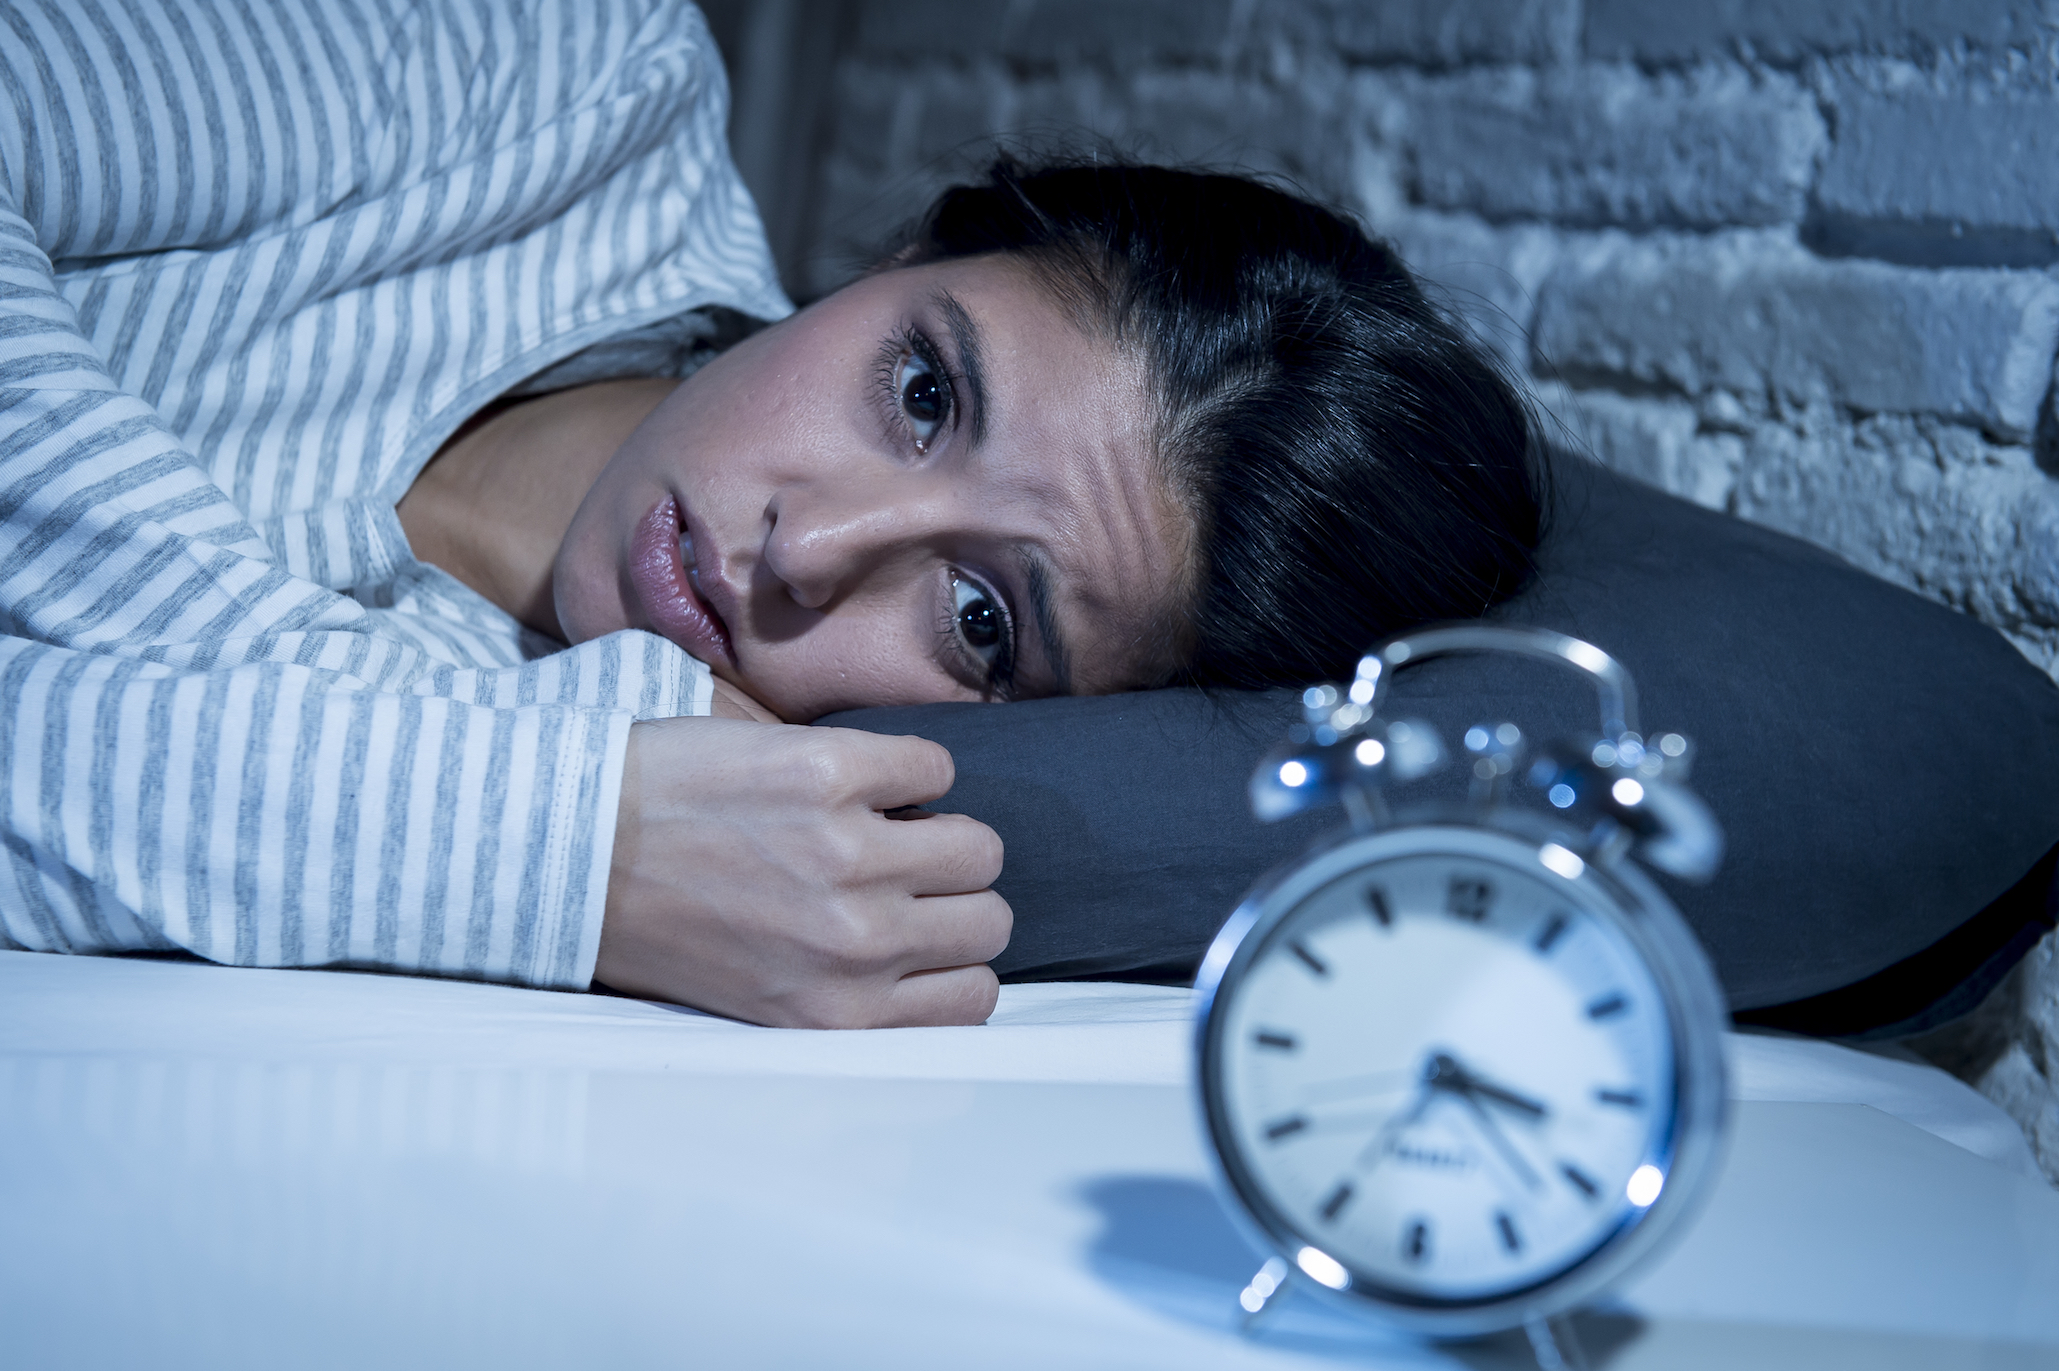 According to a new study, some people are night owls because a gene mutation has programmed their internal clock to run slowly.